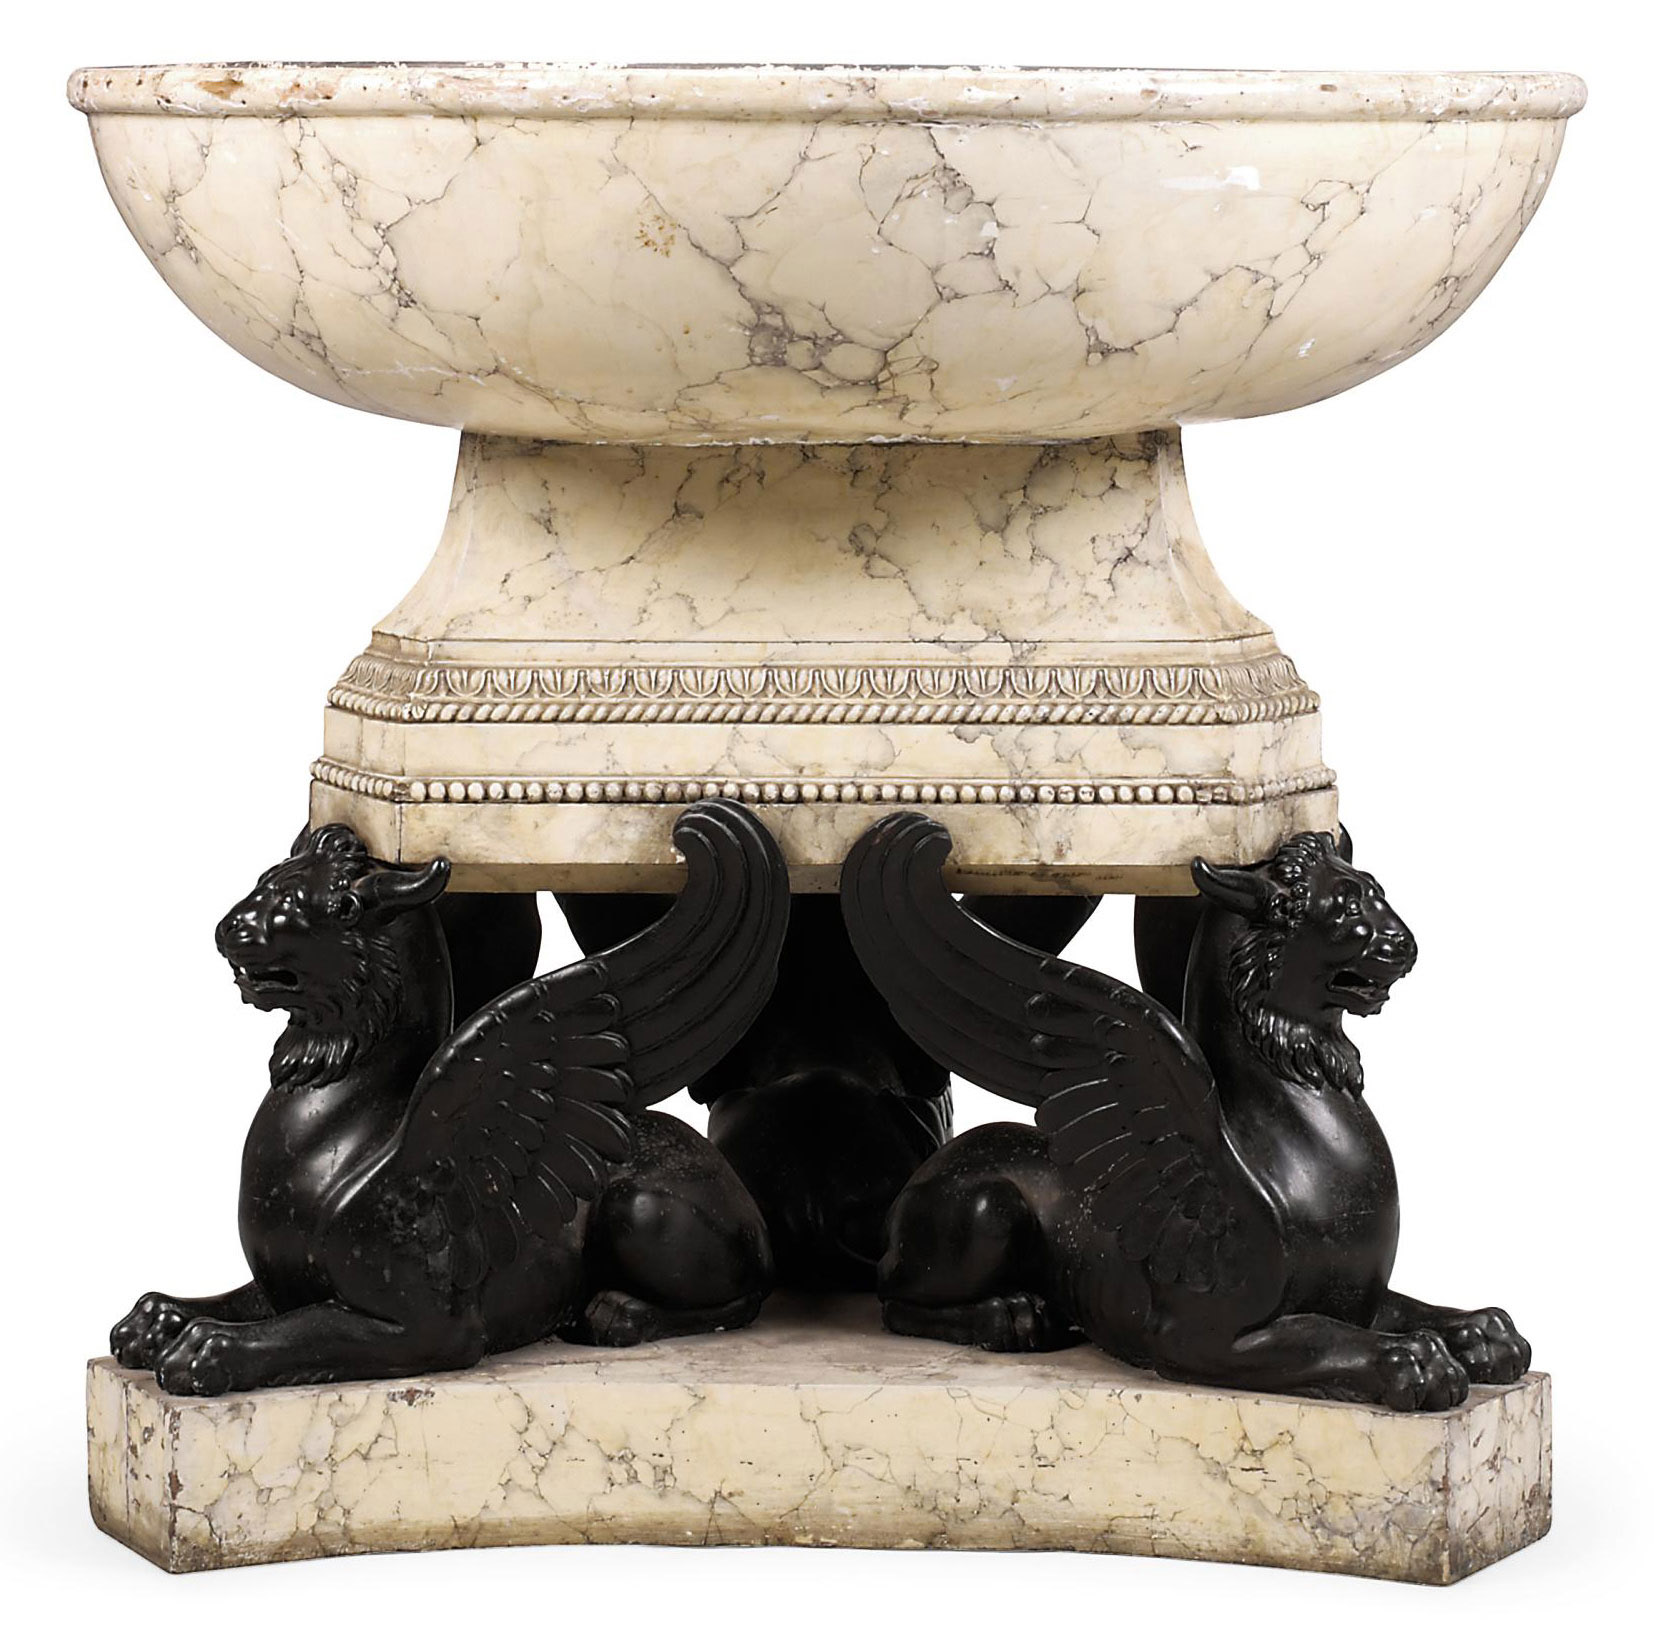 A REGENCY EBONISED AND SIMIULATED-MARBLE JARDINIERE